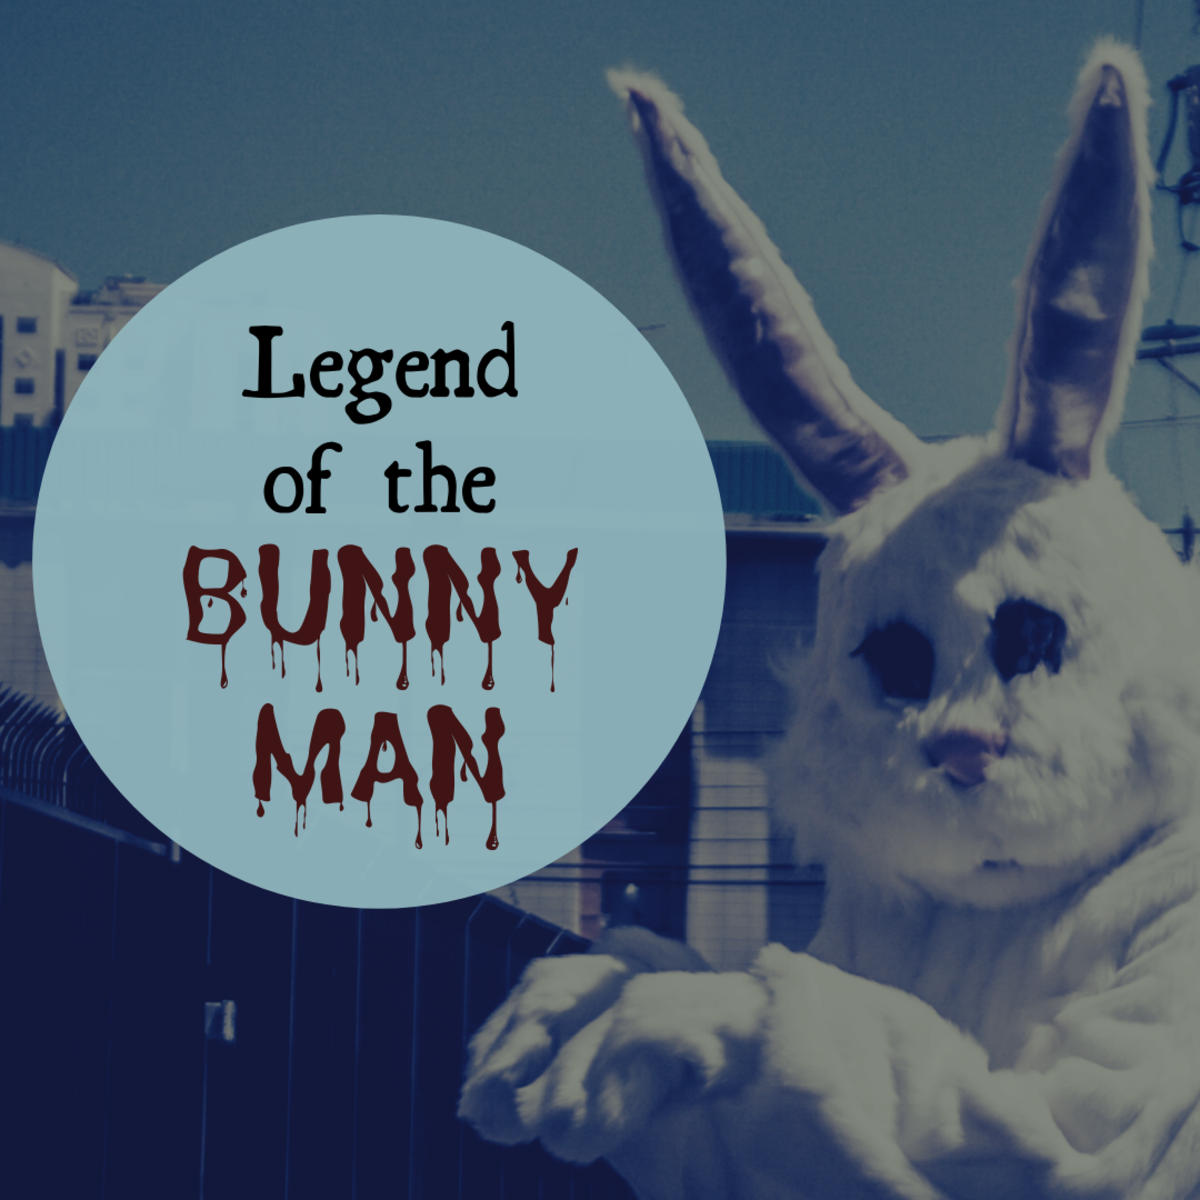 The Bunny Man: Evolution of a Legend